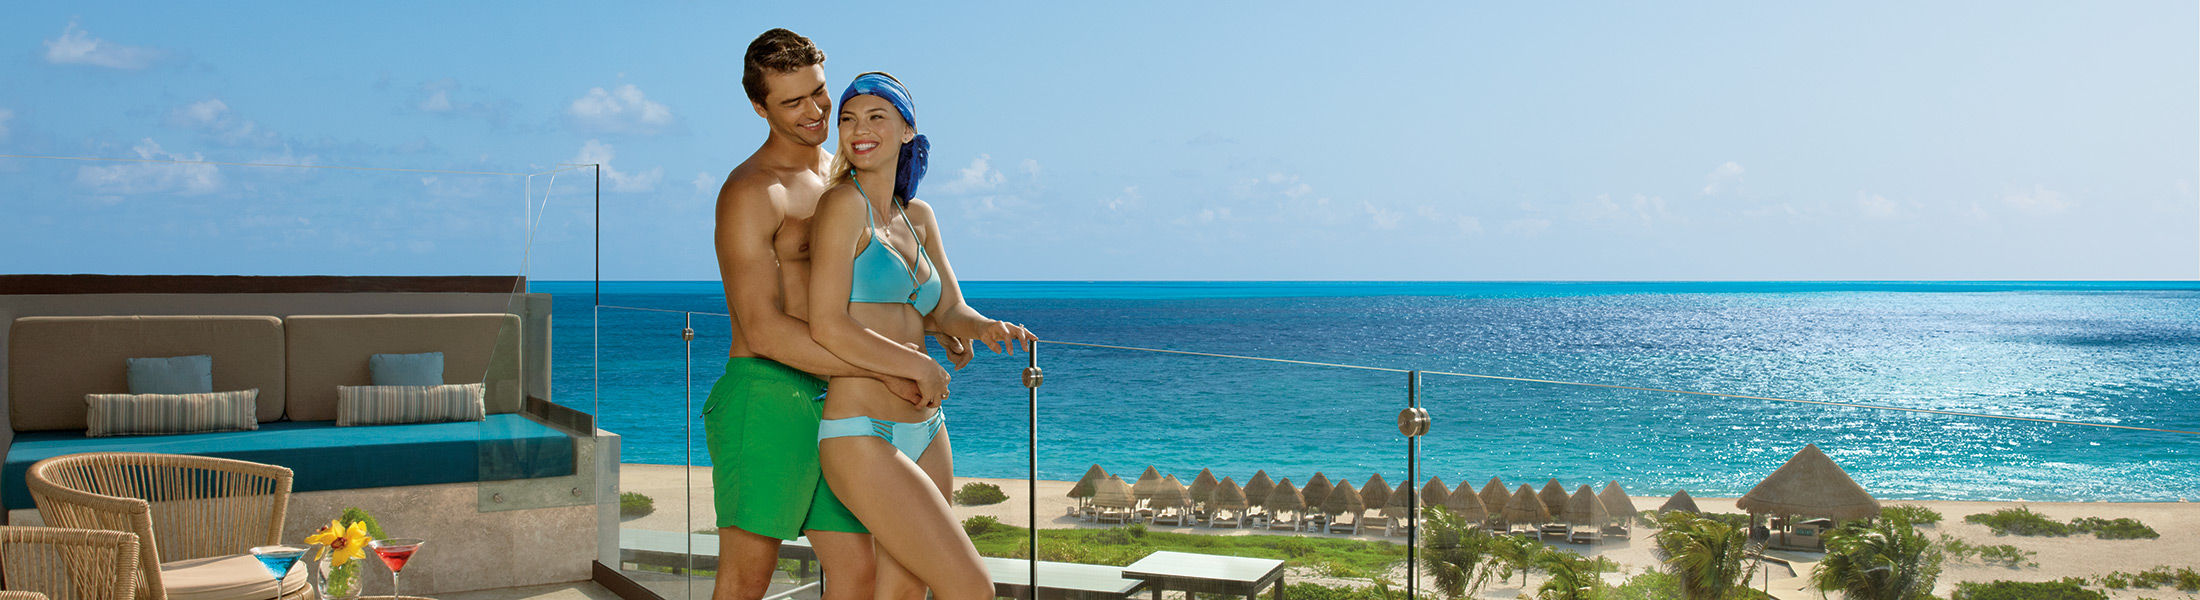 Couple on the balcony with ocean views at Dreams Playa Mujeres